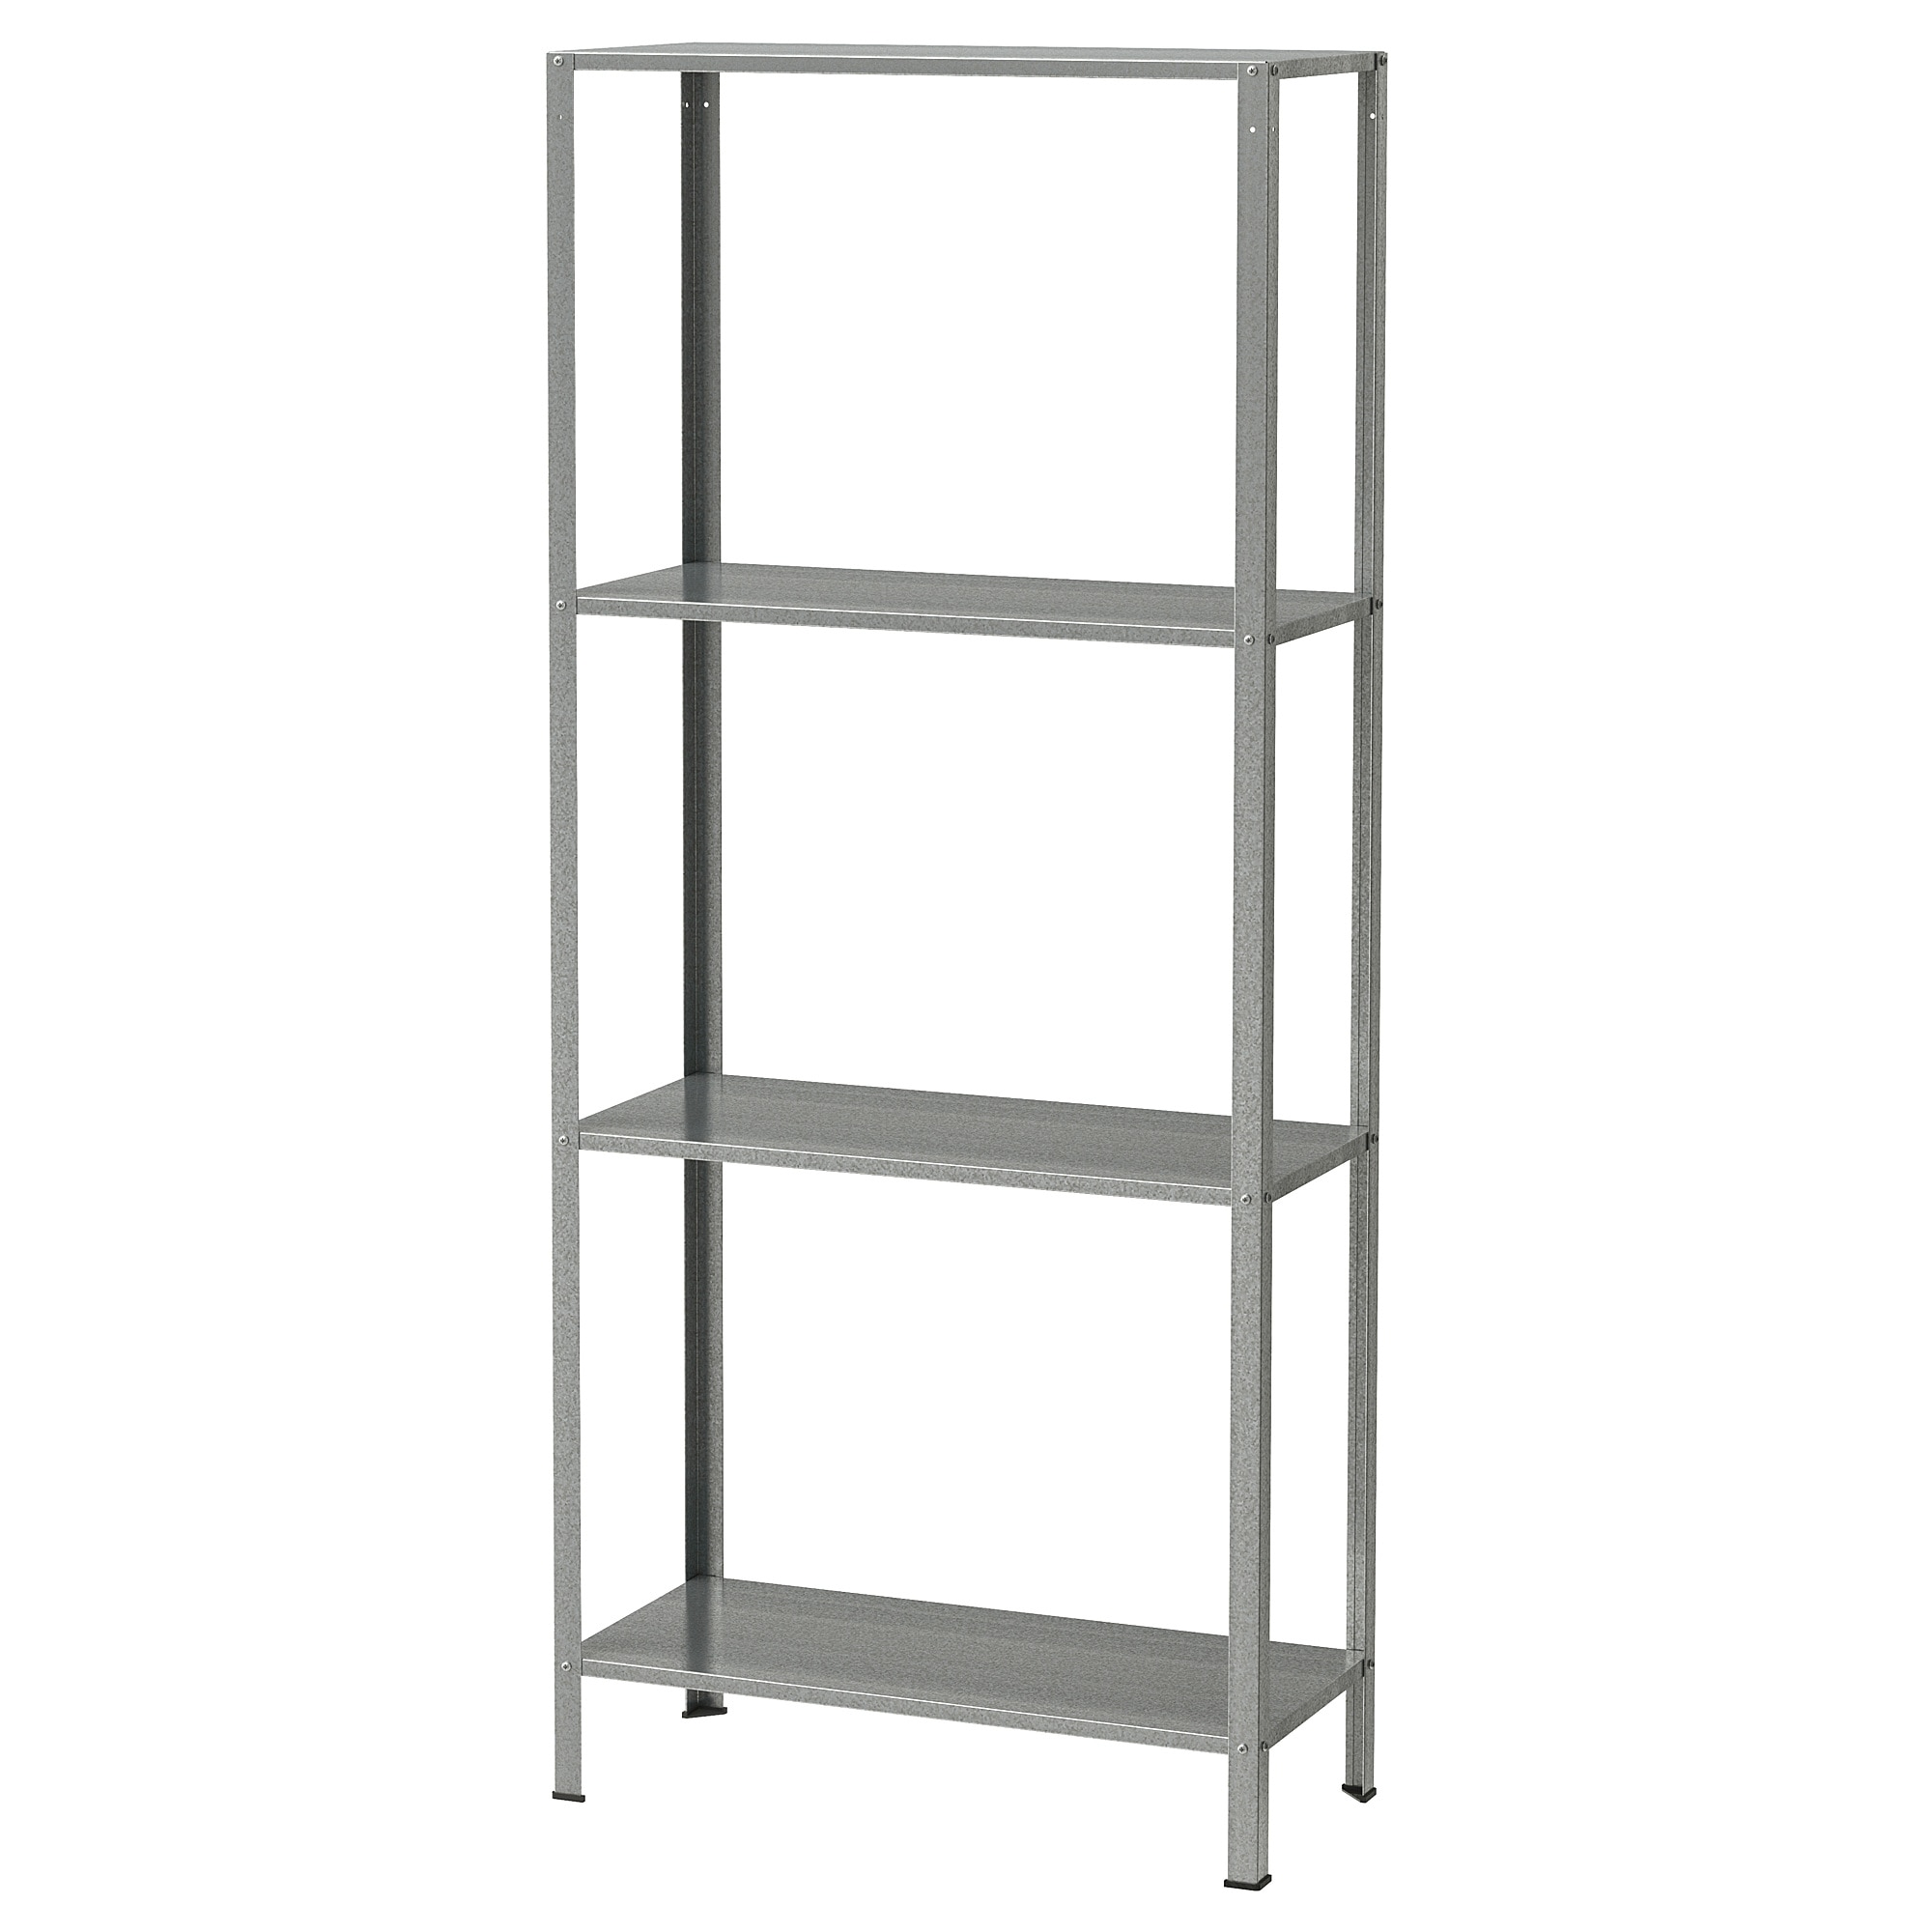 Hyllis Shelf Unit Indoor Outdoor Galvanized